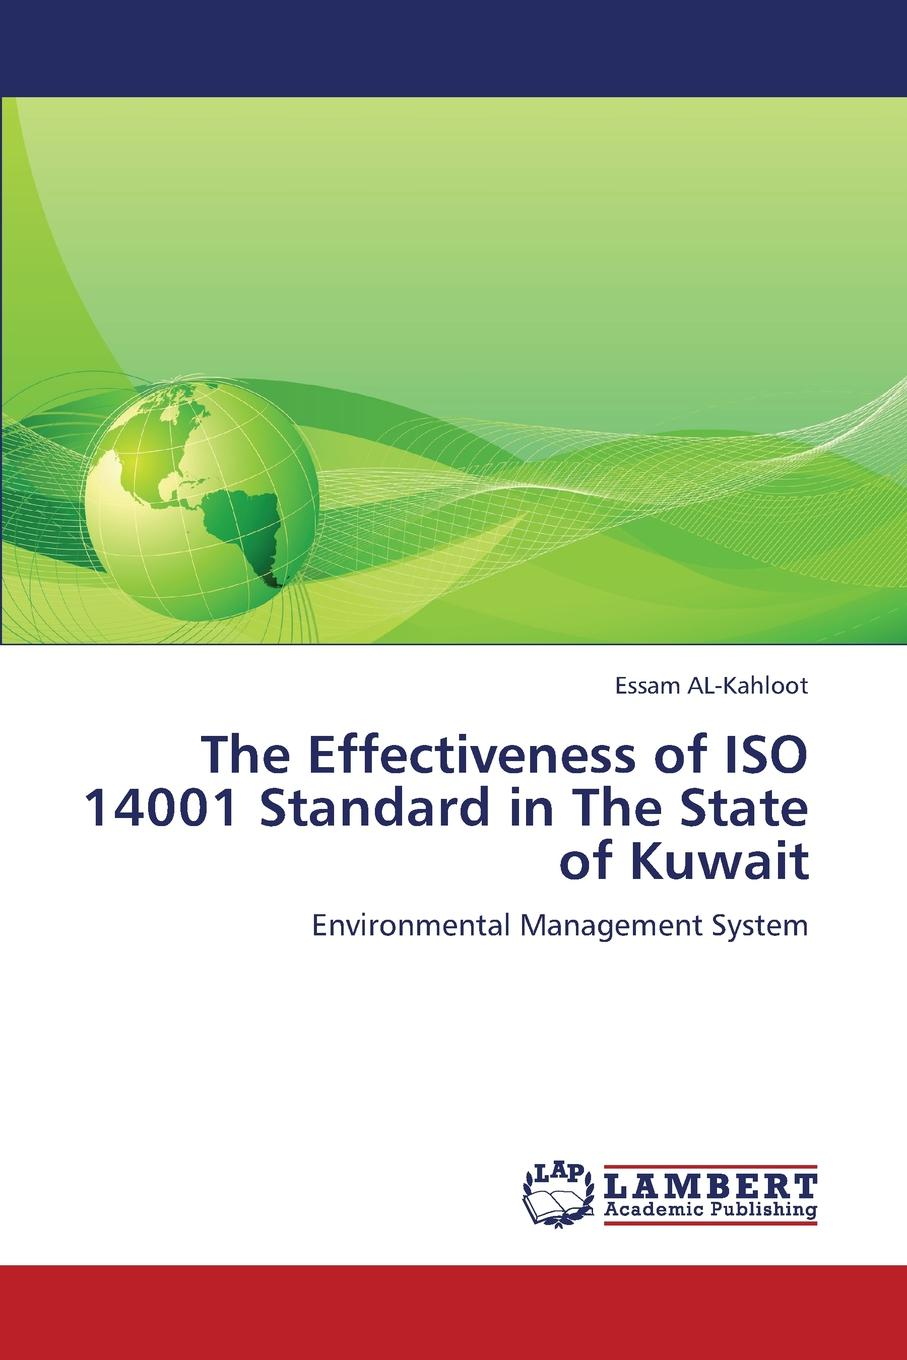 Al-Kahloot Essam The Effectiveness of ISO 14001 Standard in the State of Kuwait 2015版iso 14001环境管理体系内审员培训教程